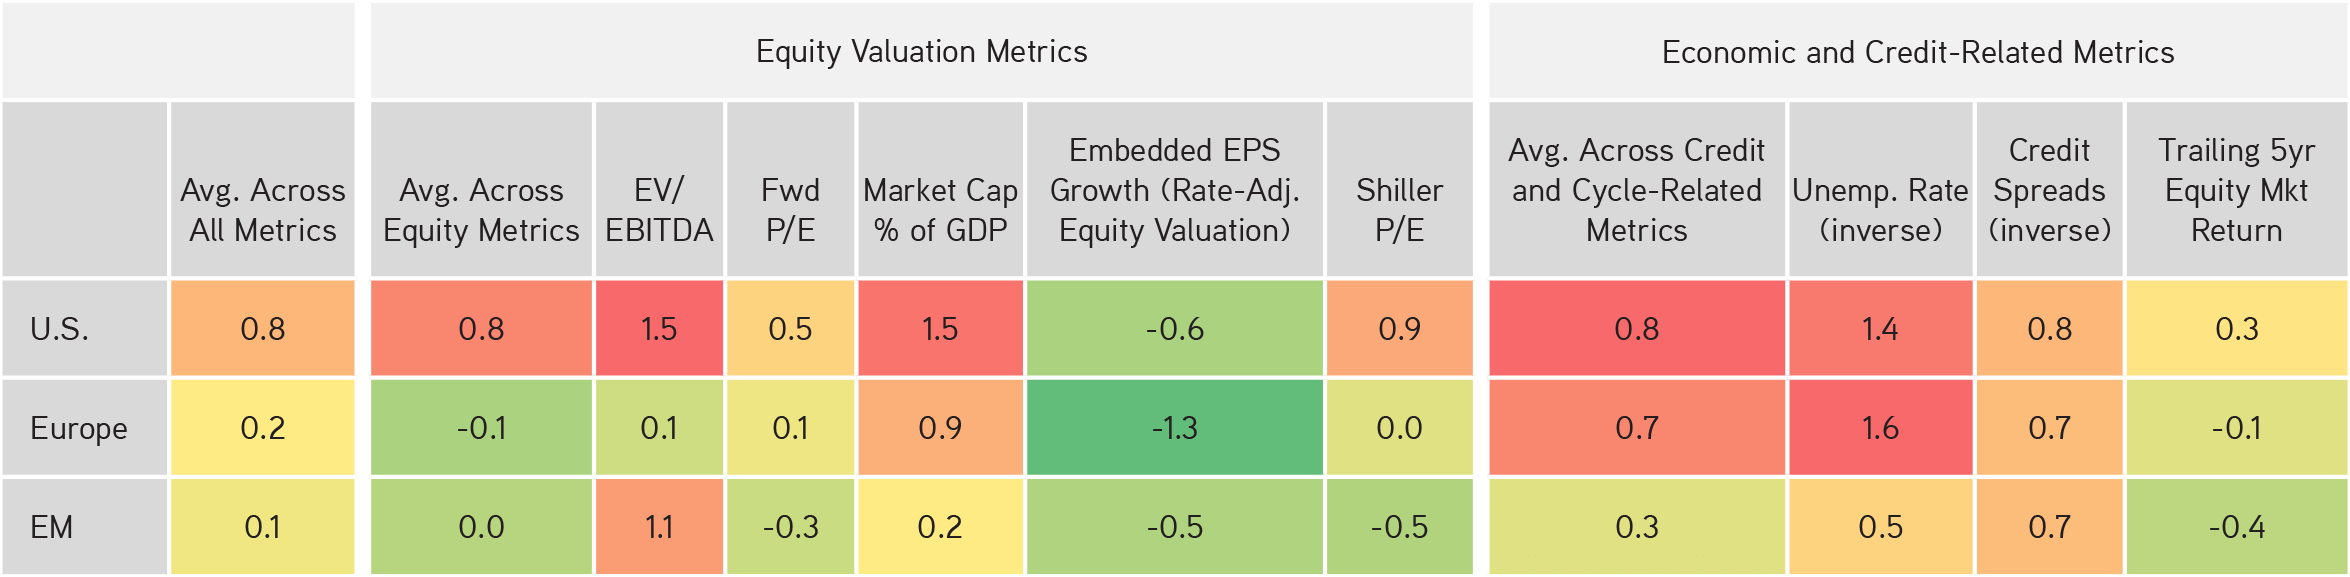 KKR | Henry McVey | New Playbook Required | Our Cycle Dashboard Suggests That Many Asset Classes at the Aggregate Level Are Now Fairly to Fully Valued; As Such, More Investment Creativity Will Be Required